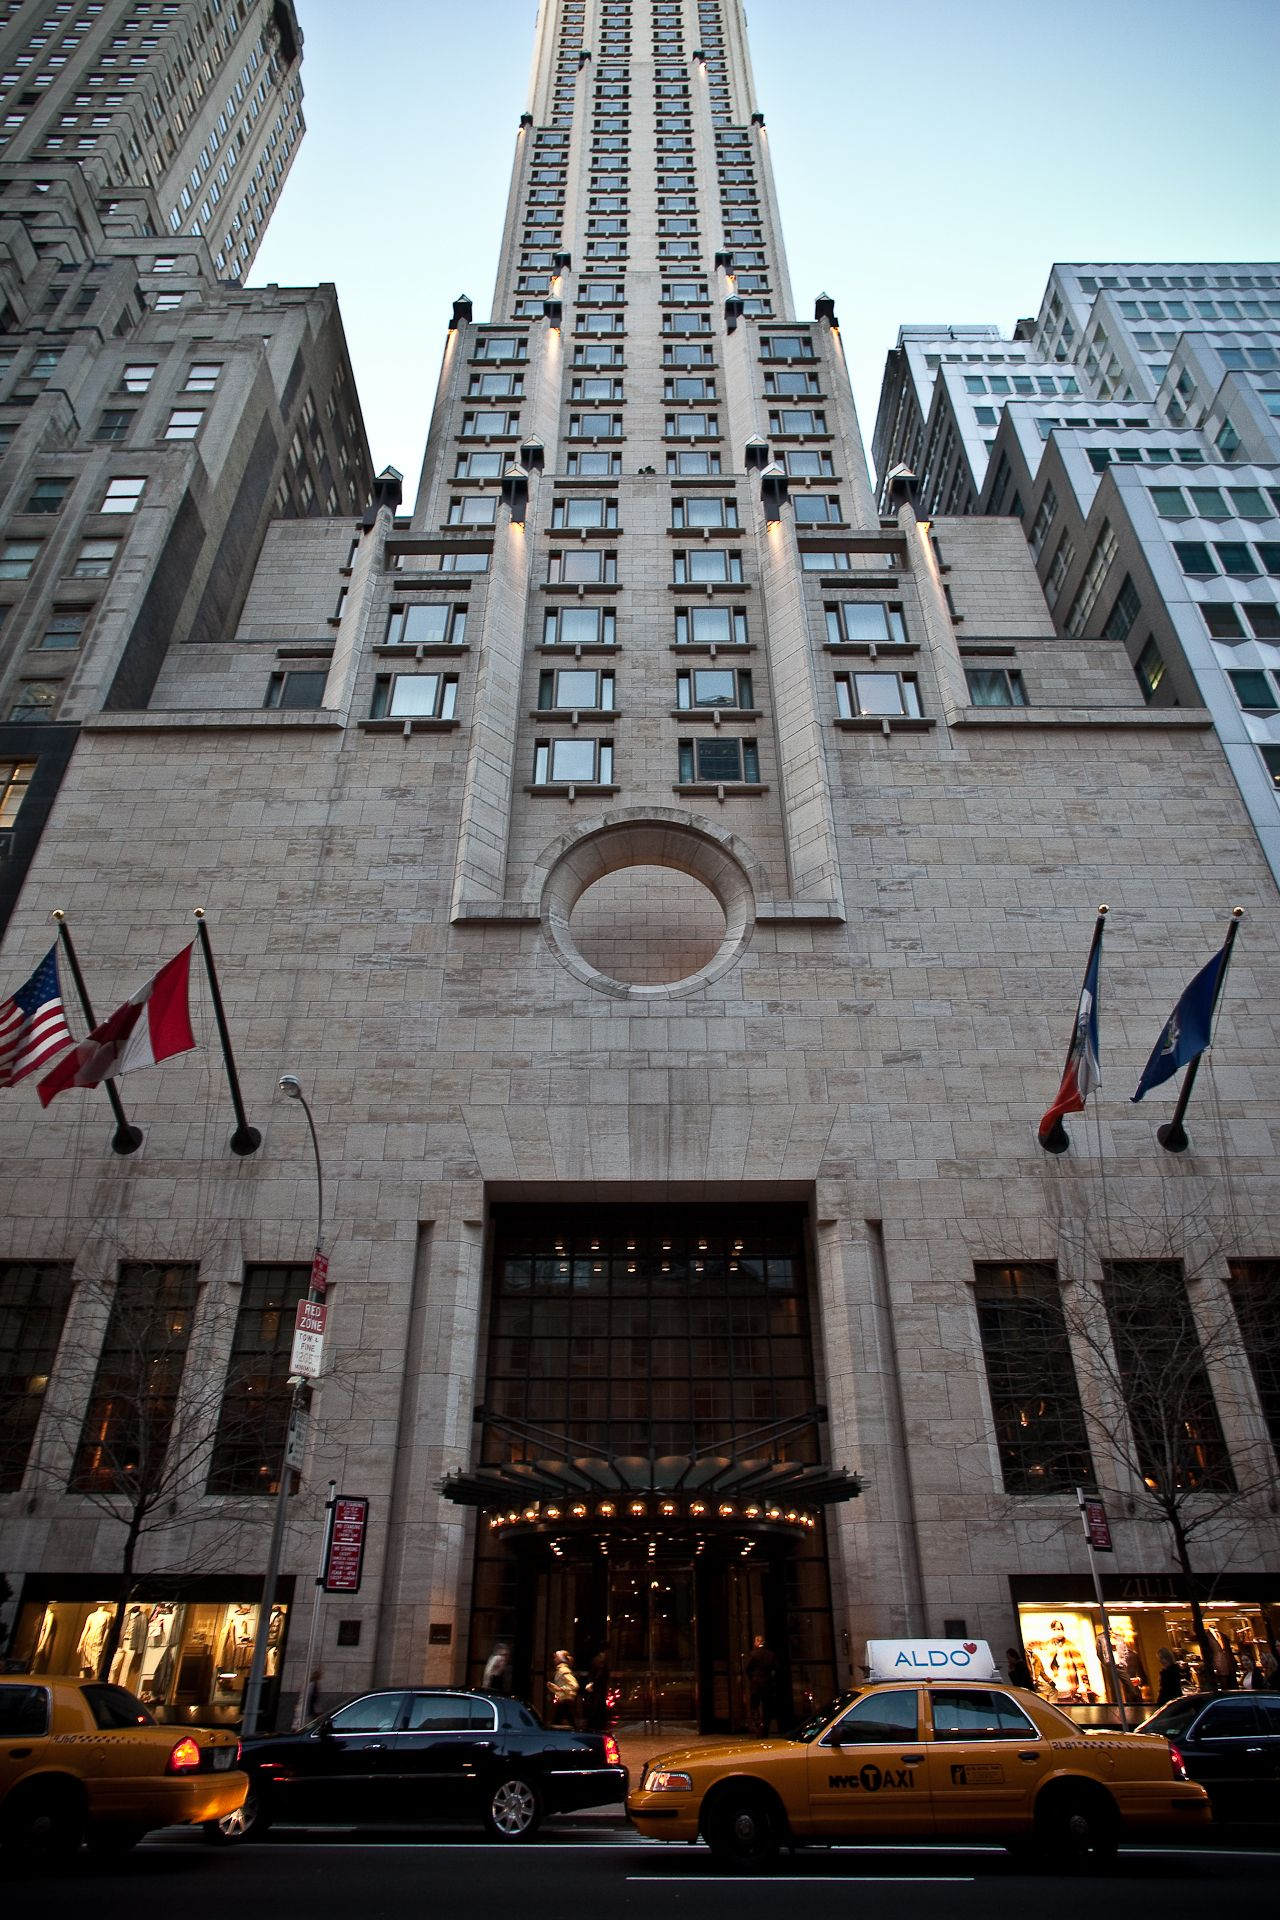 Hotel Exterior: Four Seasons Hotel New York Exterior Entrance Looking Up